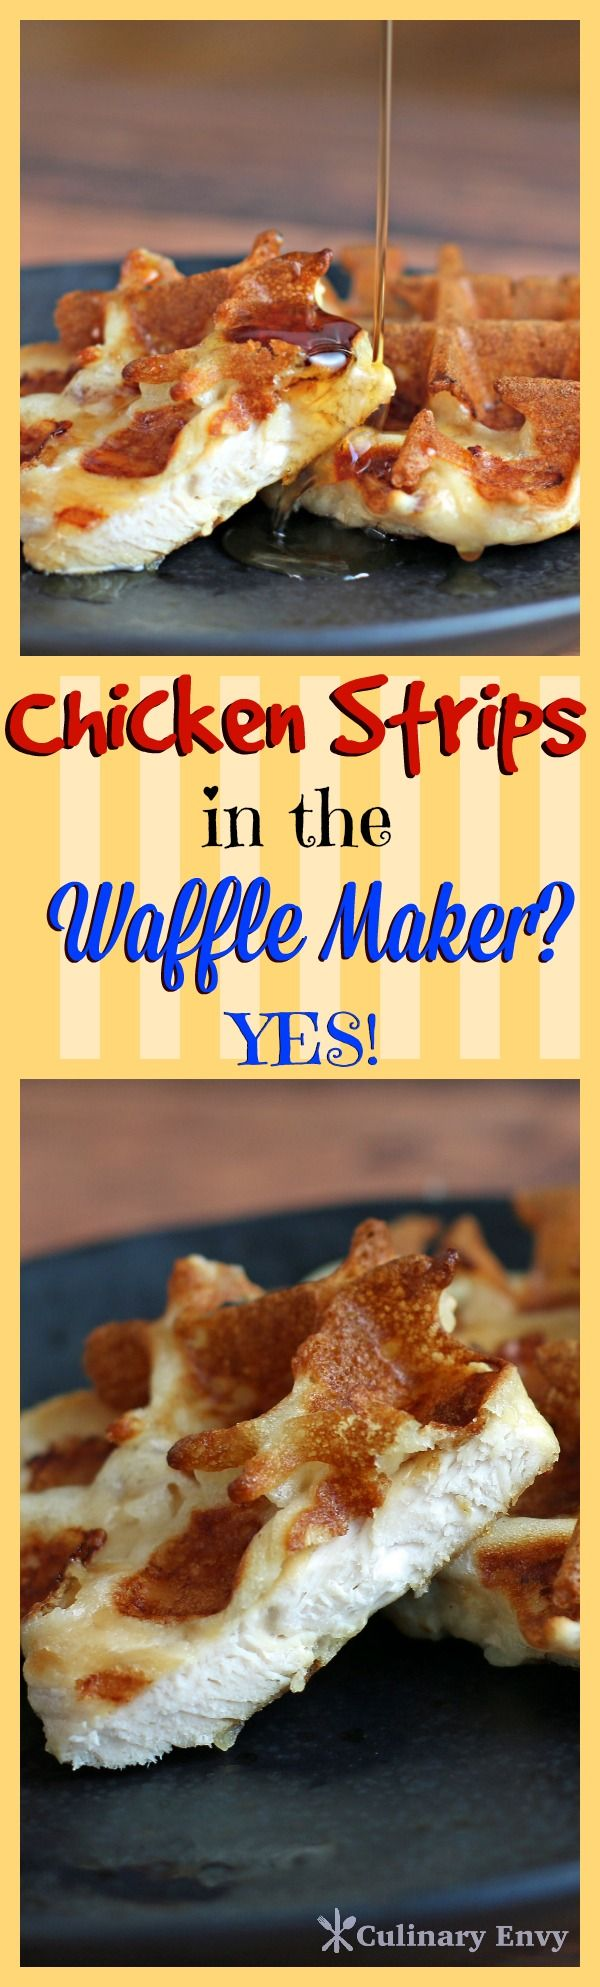 Chicken & Waffle Crisps are now the perfect ONE bite breakfast!  Great for KIDS! So EASY and TASTY!  You Will Love Them!